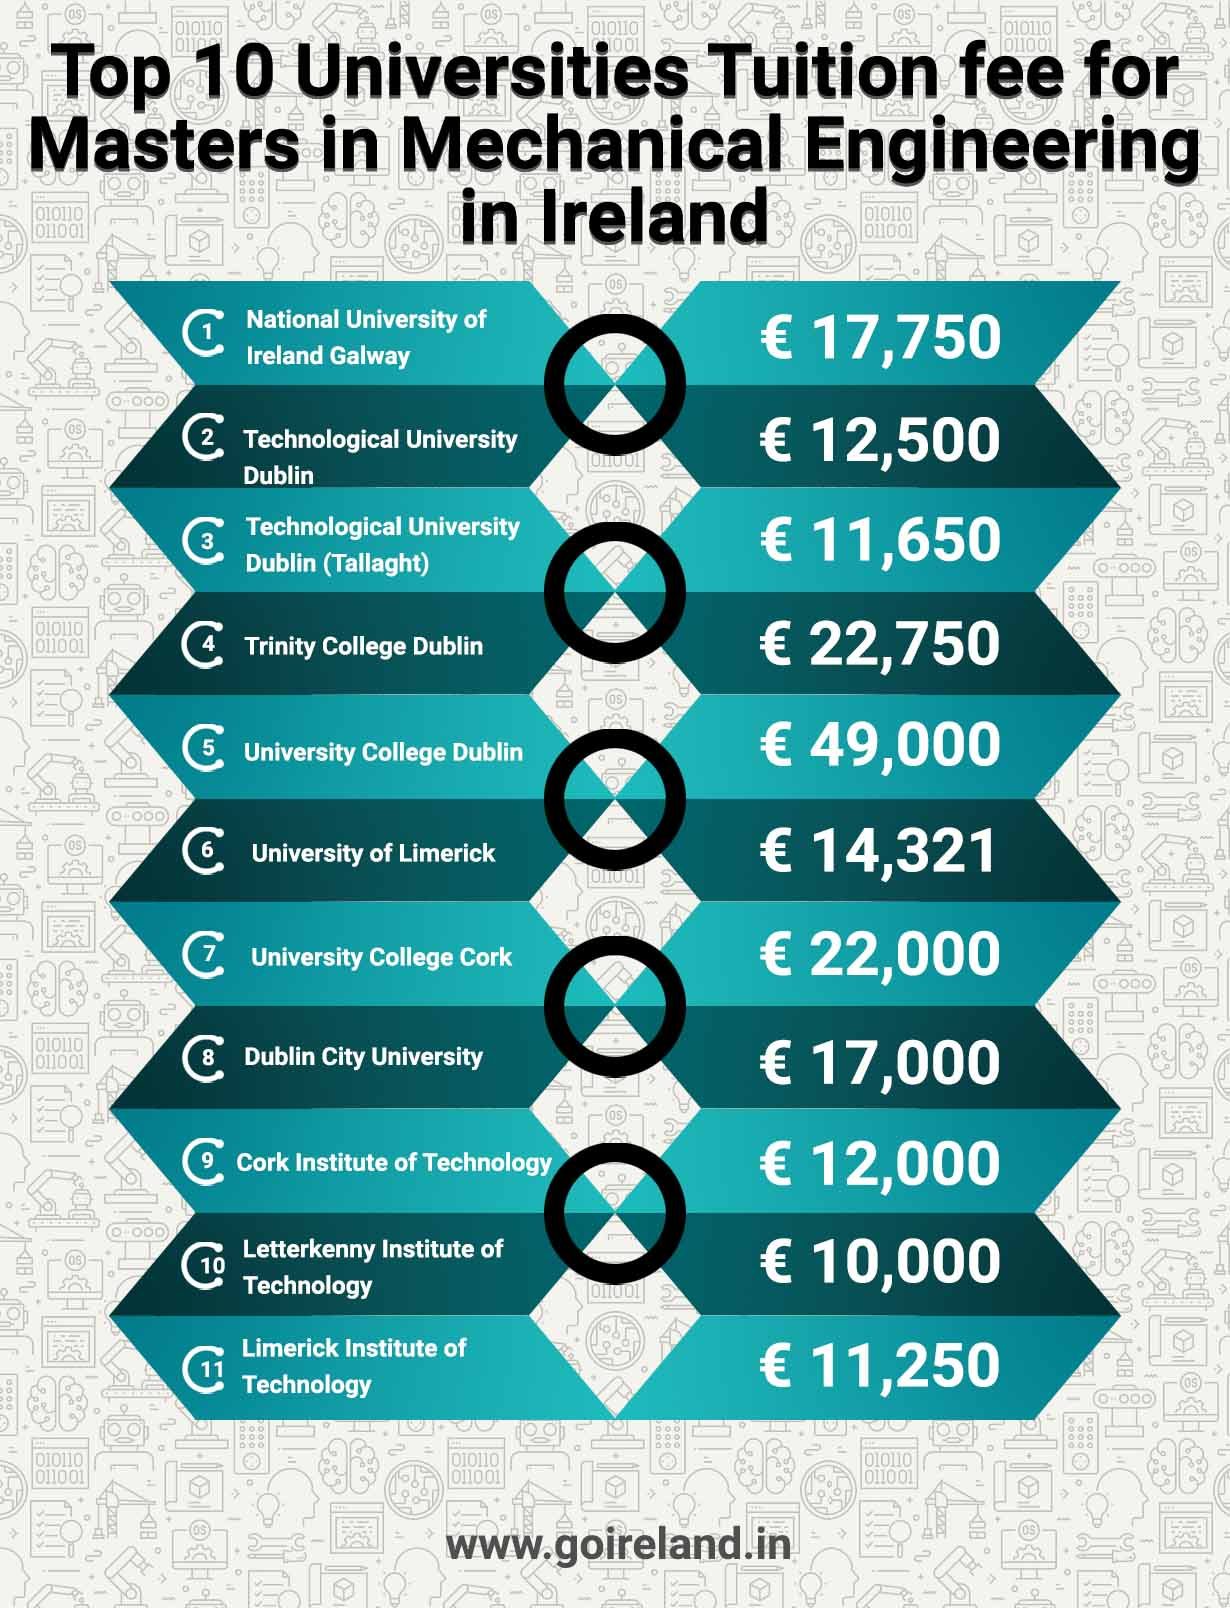 Top 10 Universities Tuition Fee for Masters in Mechanical Engineering in Ireland